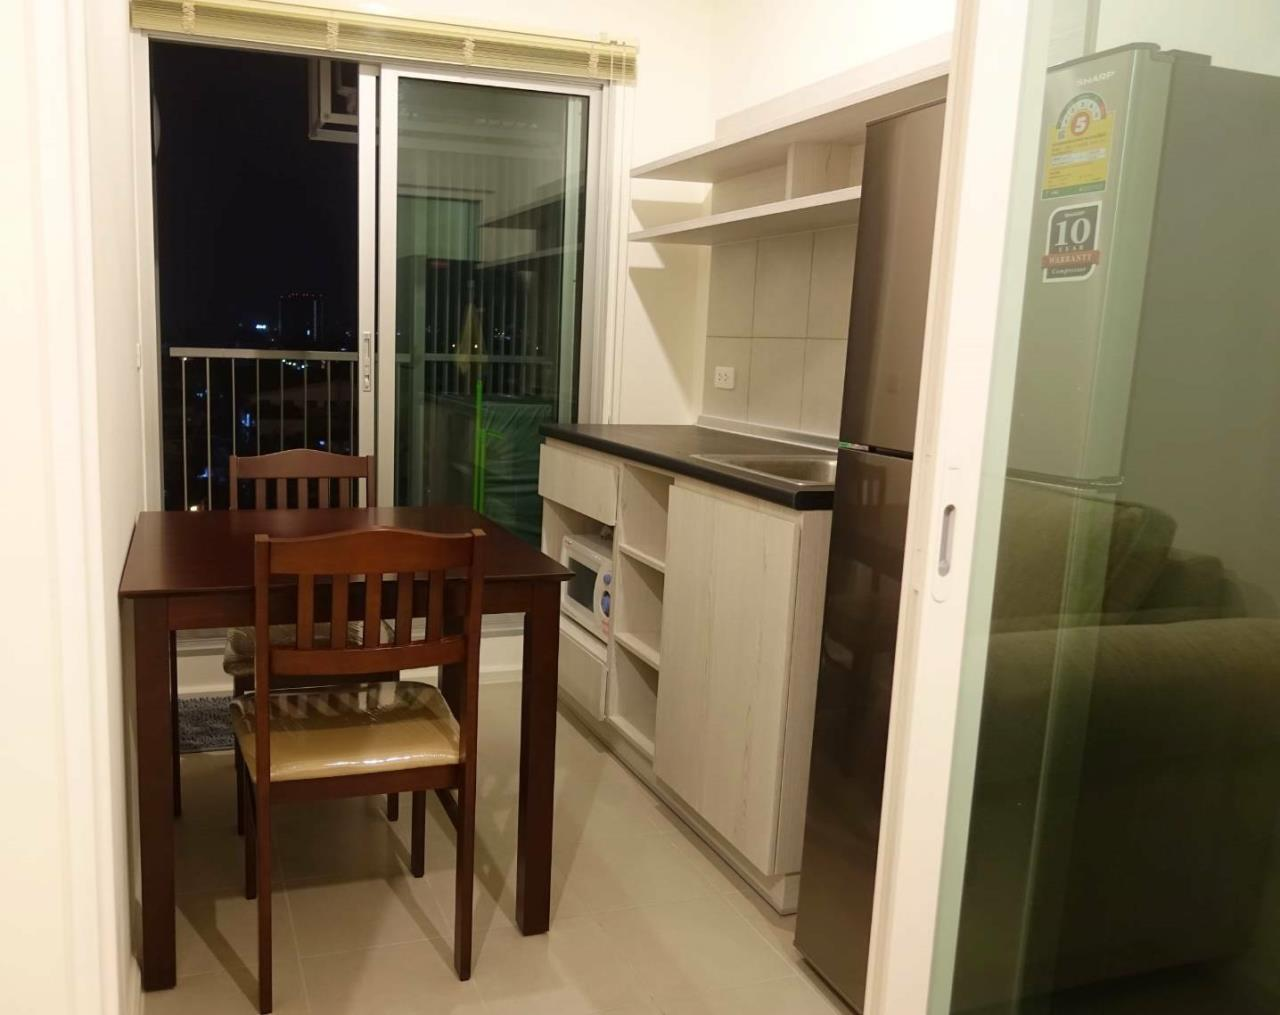 SALA ESTATE Agency's (FOR RENT)ASPIRE SATHORN - THAPRA – BTS TALAT PHLU, 31 SQM 1 BEDROOM 1 BATHROOM, FULLY FURNISHED 6